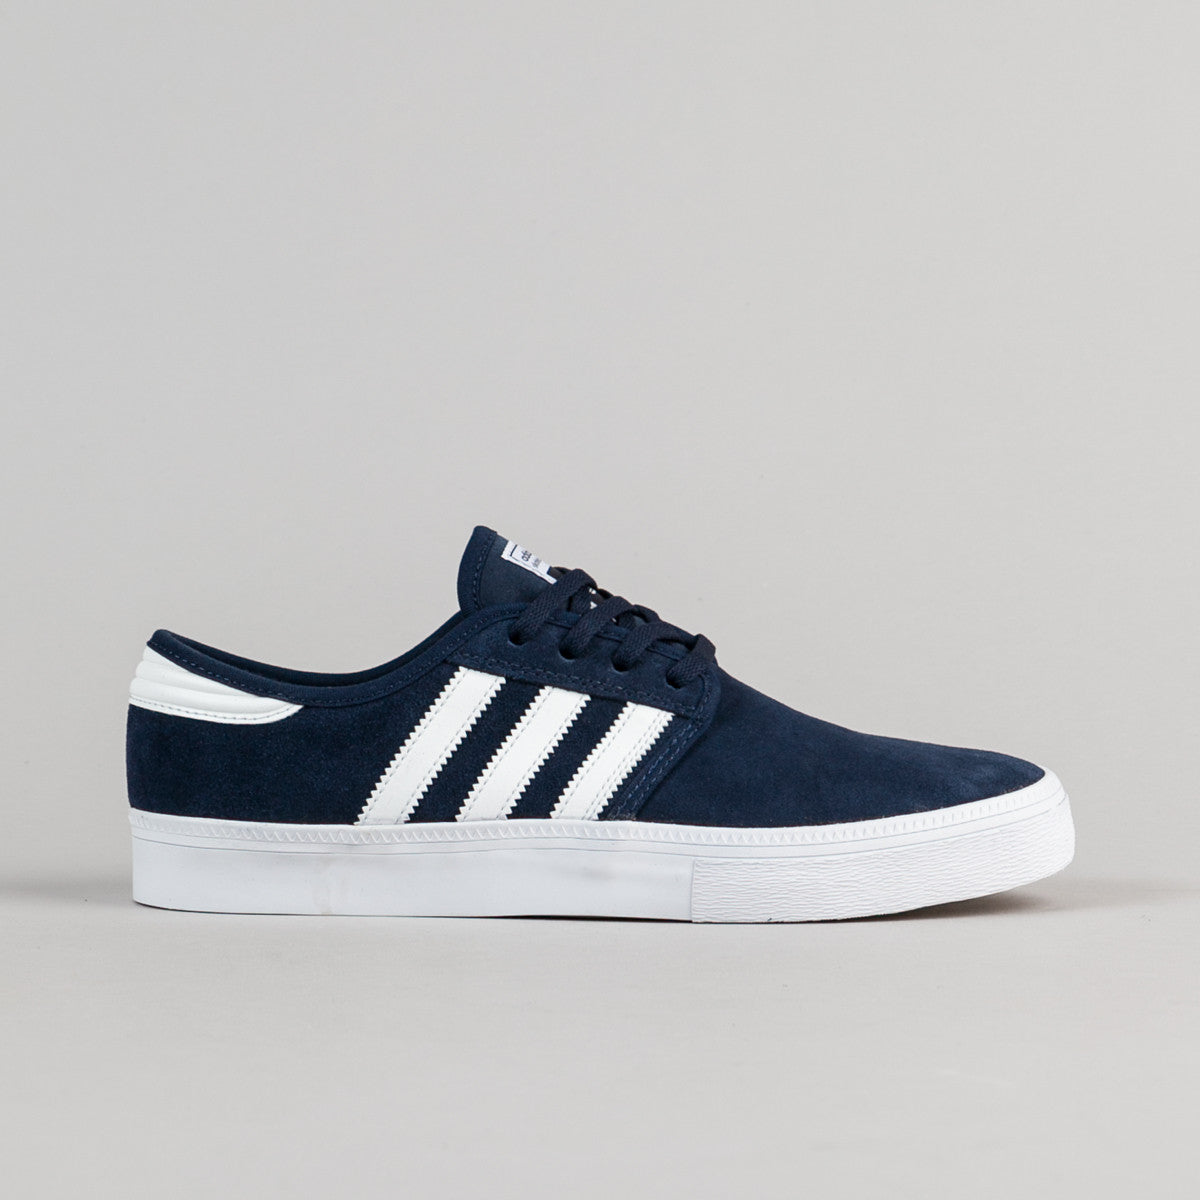 Adidas Seeley ADV Shoes - Collegiate Navy / Crystal White / White